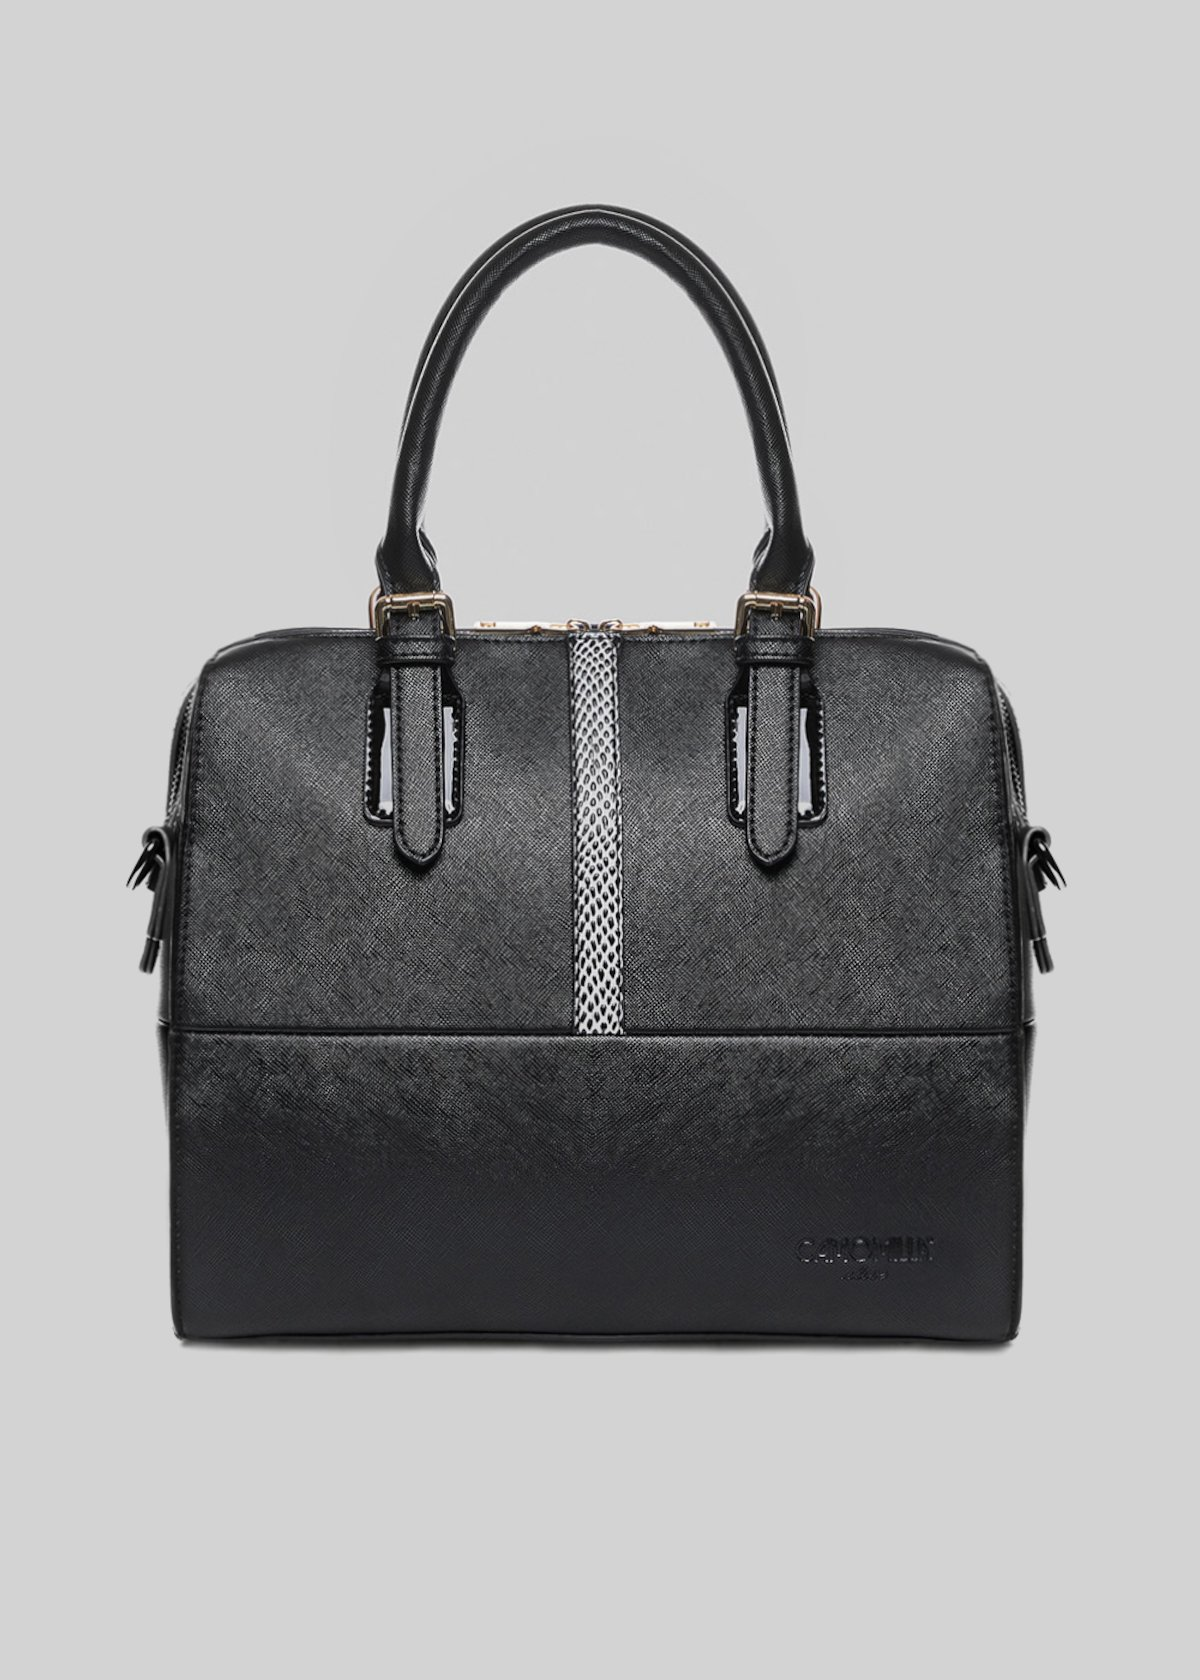 Bloody bag with patent inserts, python and removable chain shoulder strap - Black - Woman - Category image